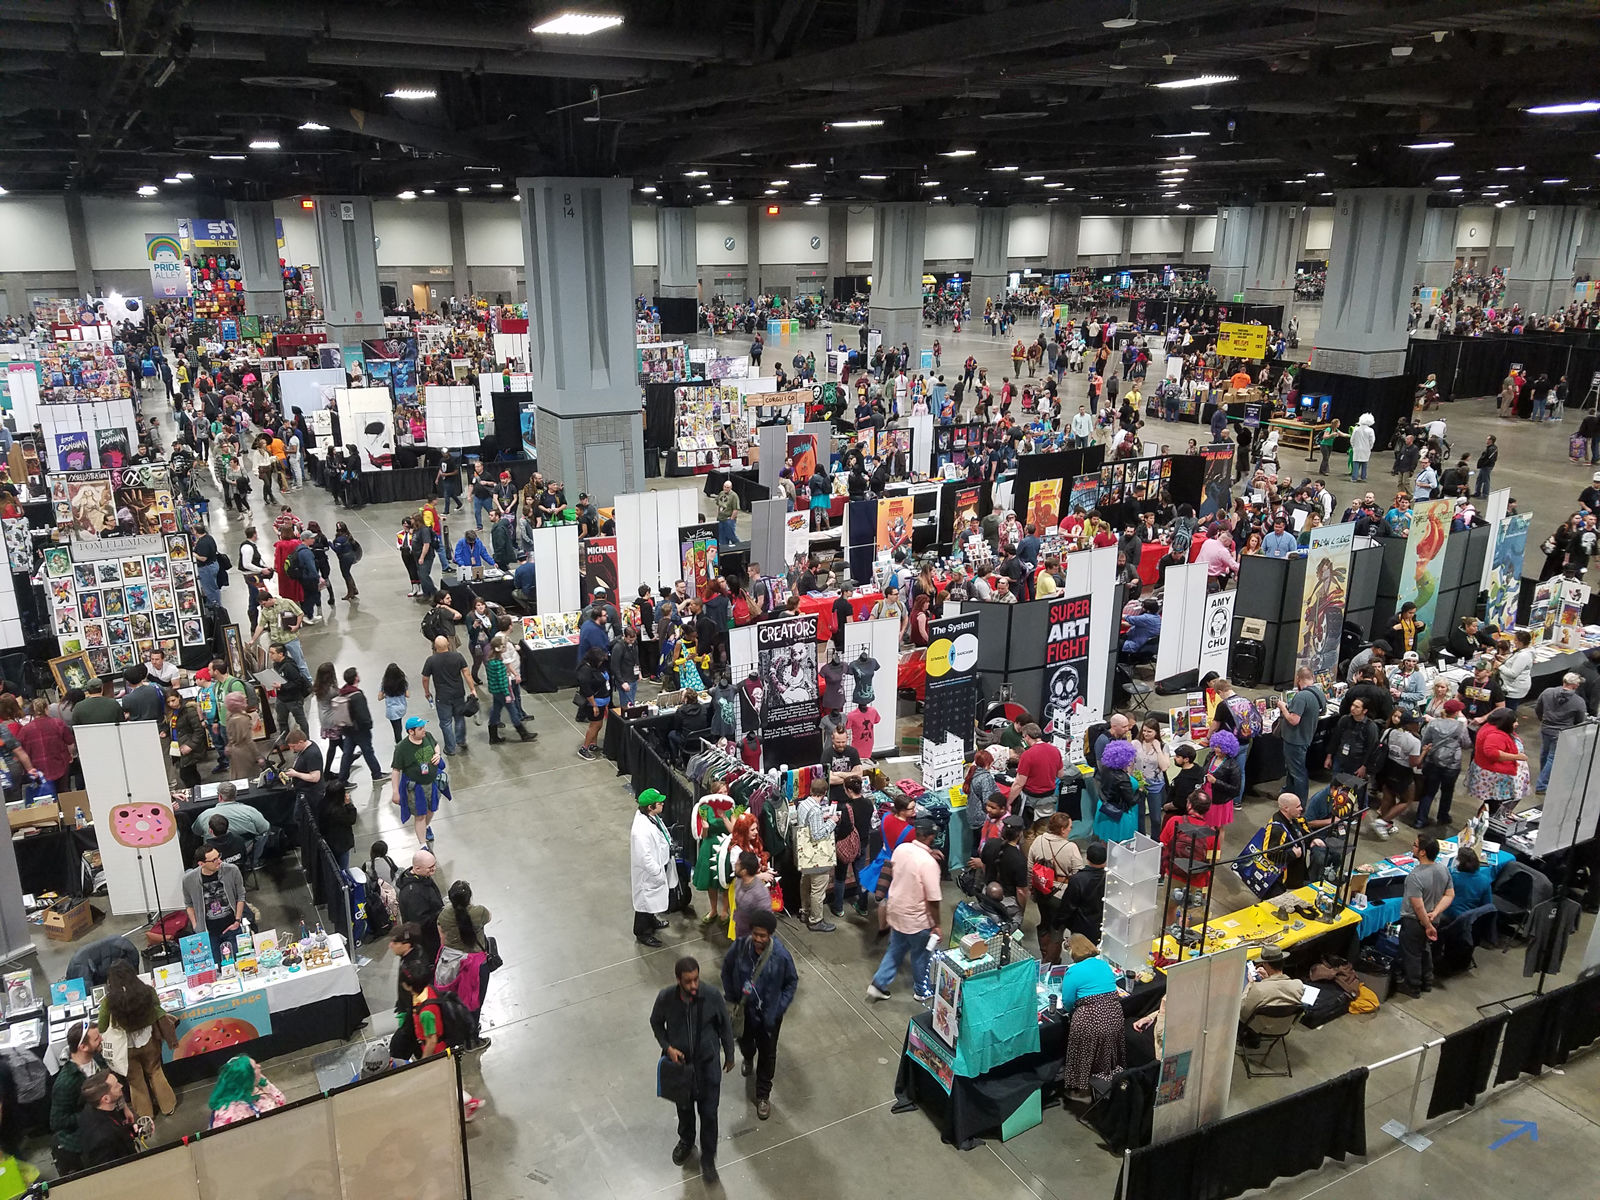 Artists and vendors at Awesomecon 2018. (WTOP/Will Vitka)